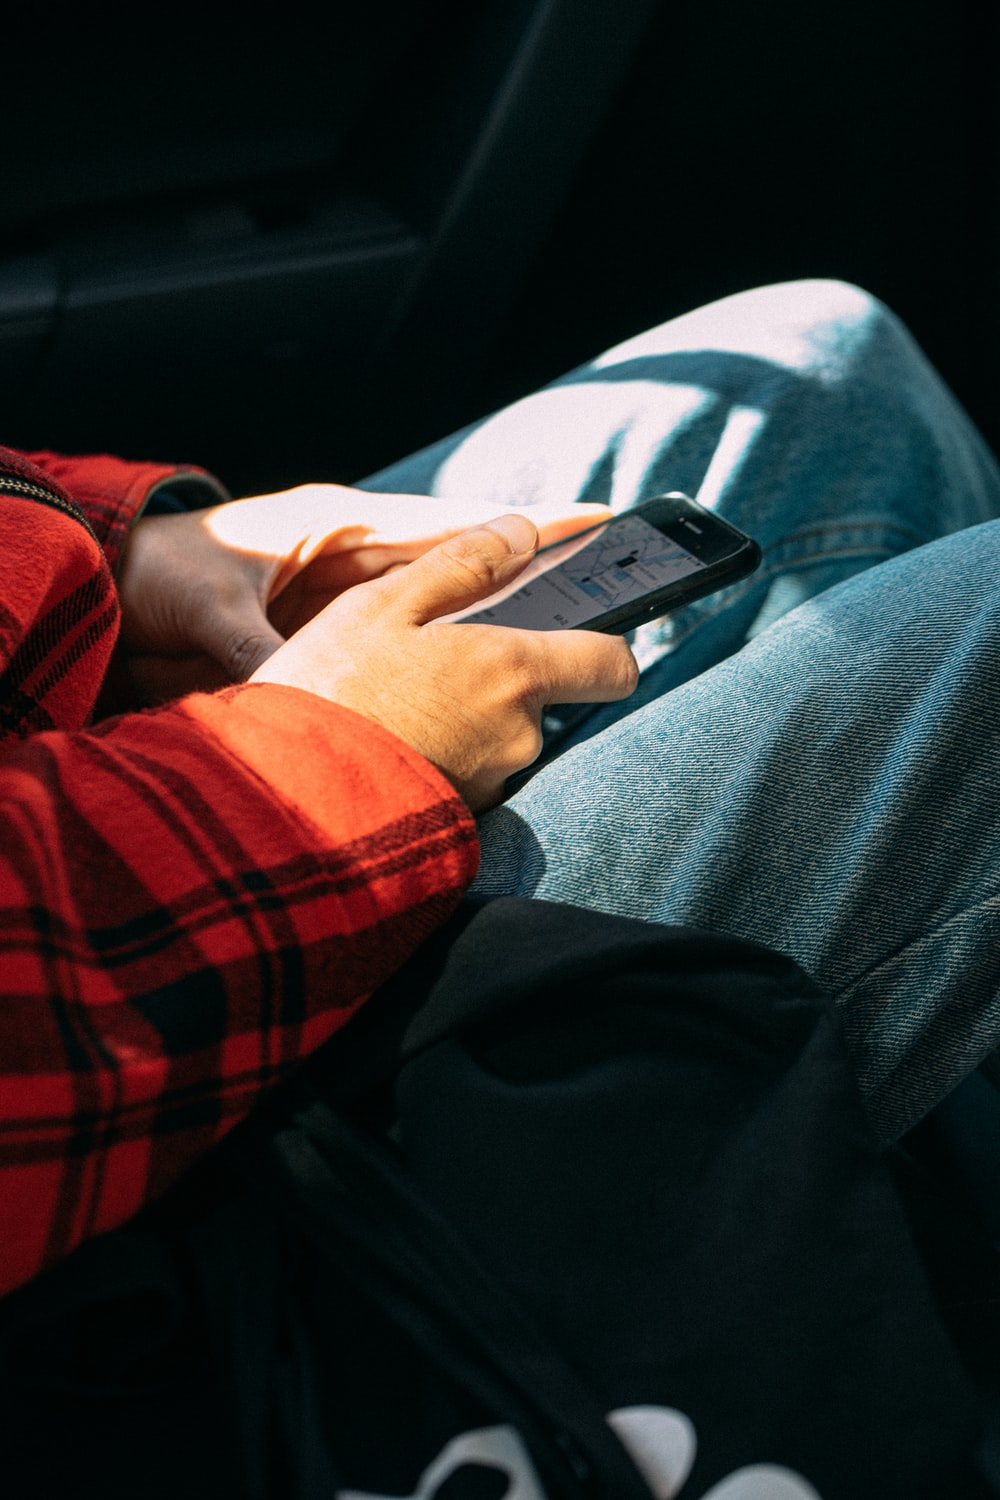 person in red and black plaid long sleeve shirt holding black smartphone